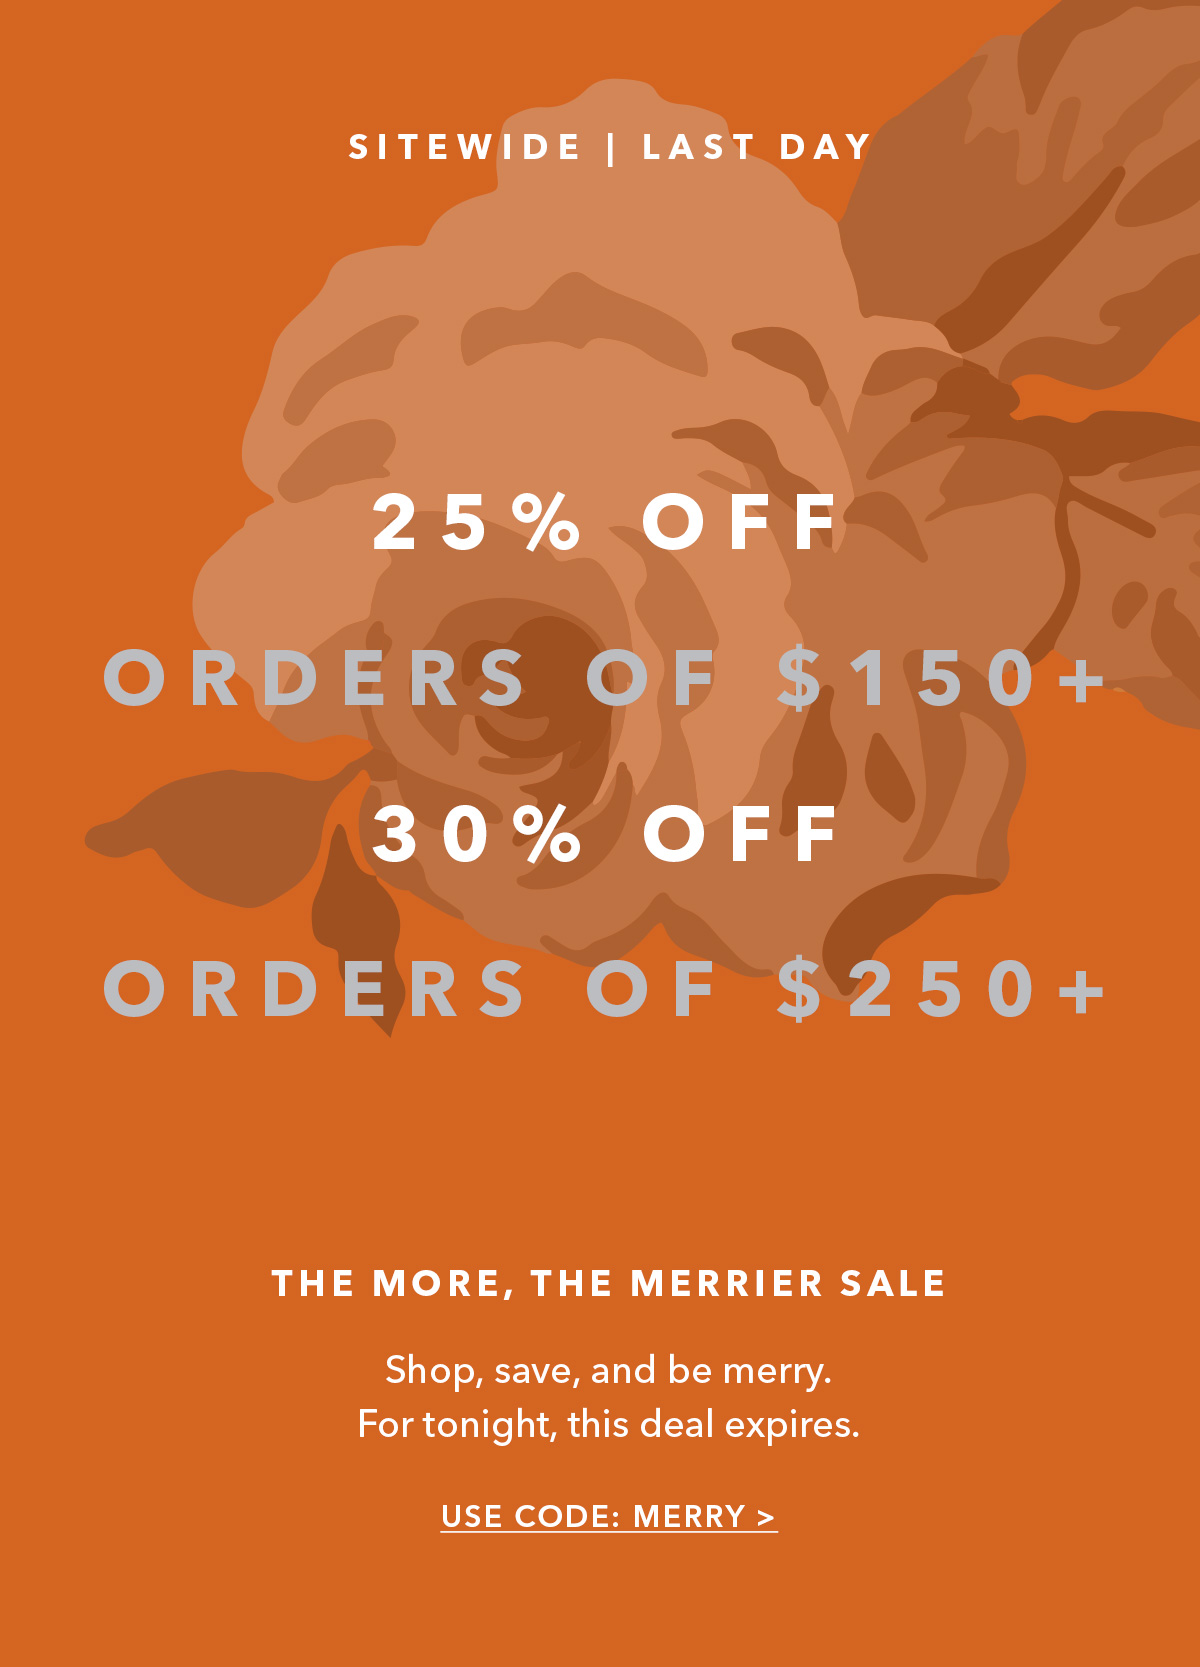 Sitewide | Ends Tonight // 30% Off $250+ / 25% Off $150+ // USE CODE MERRY →